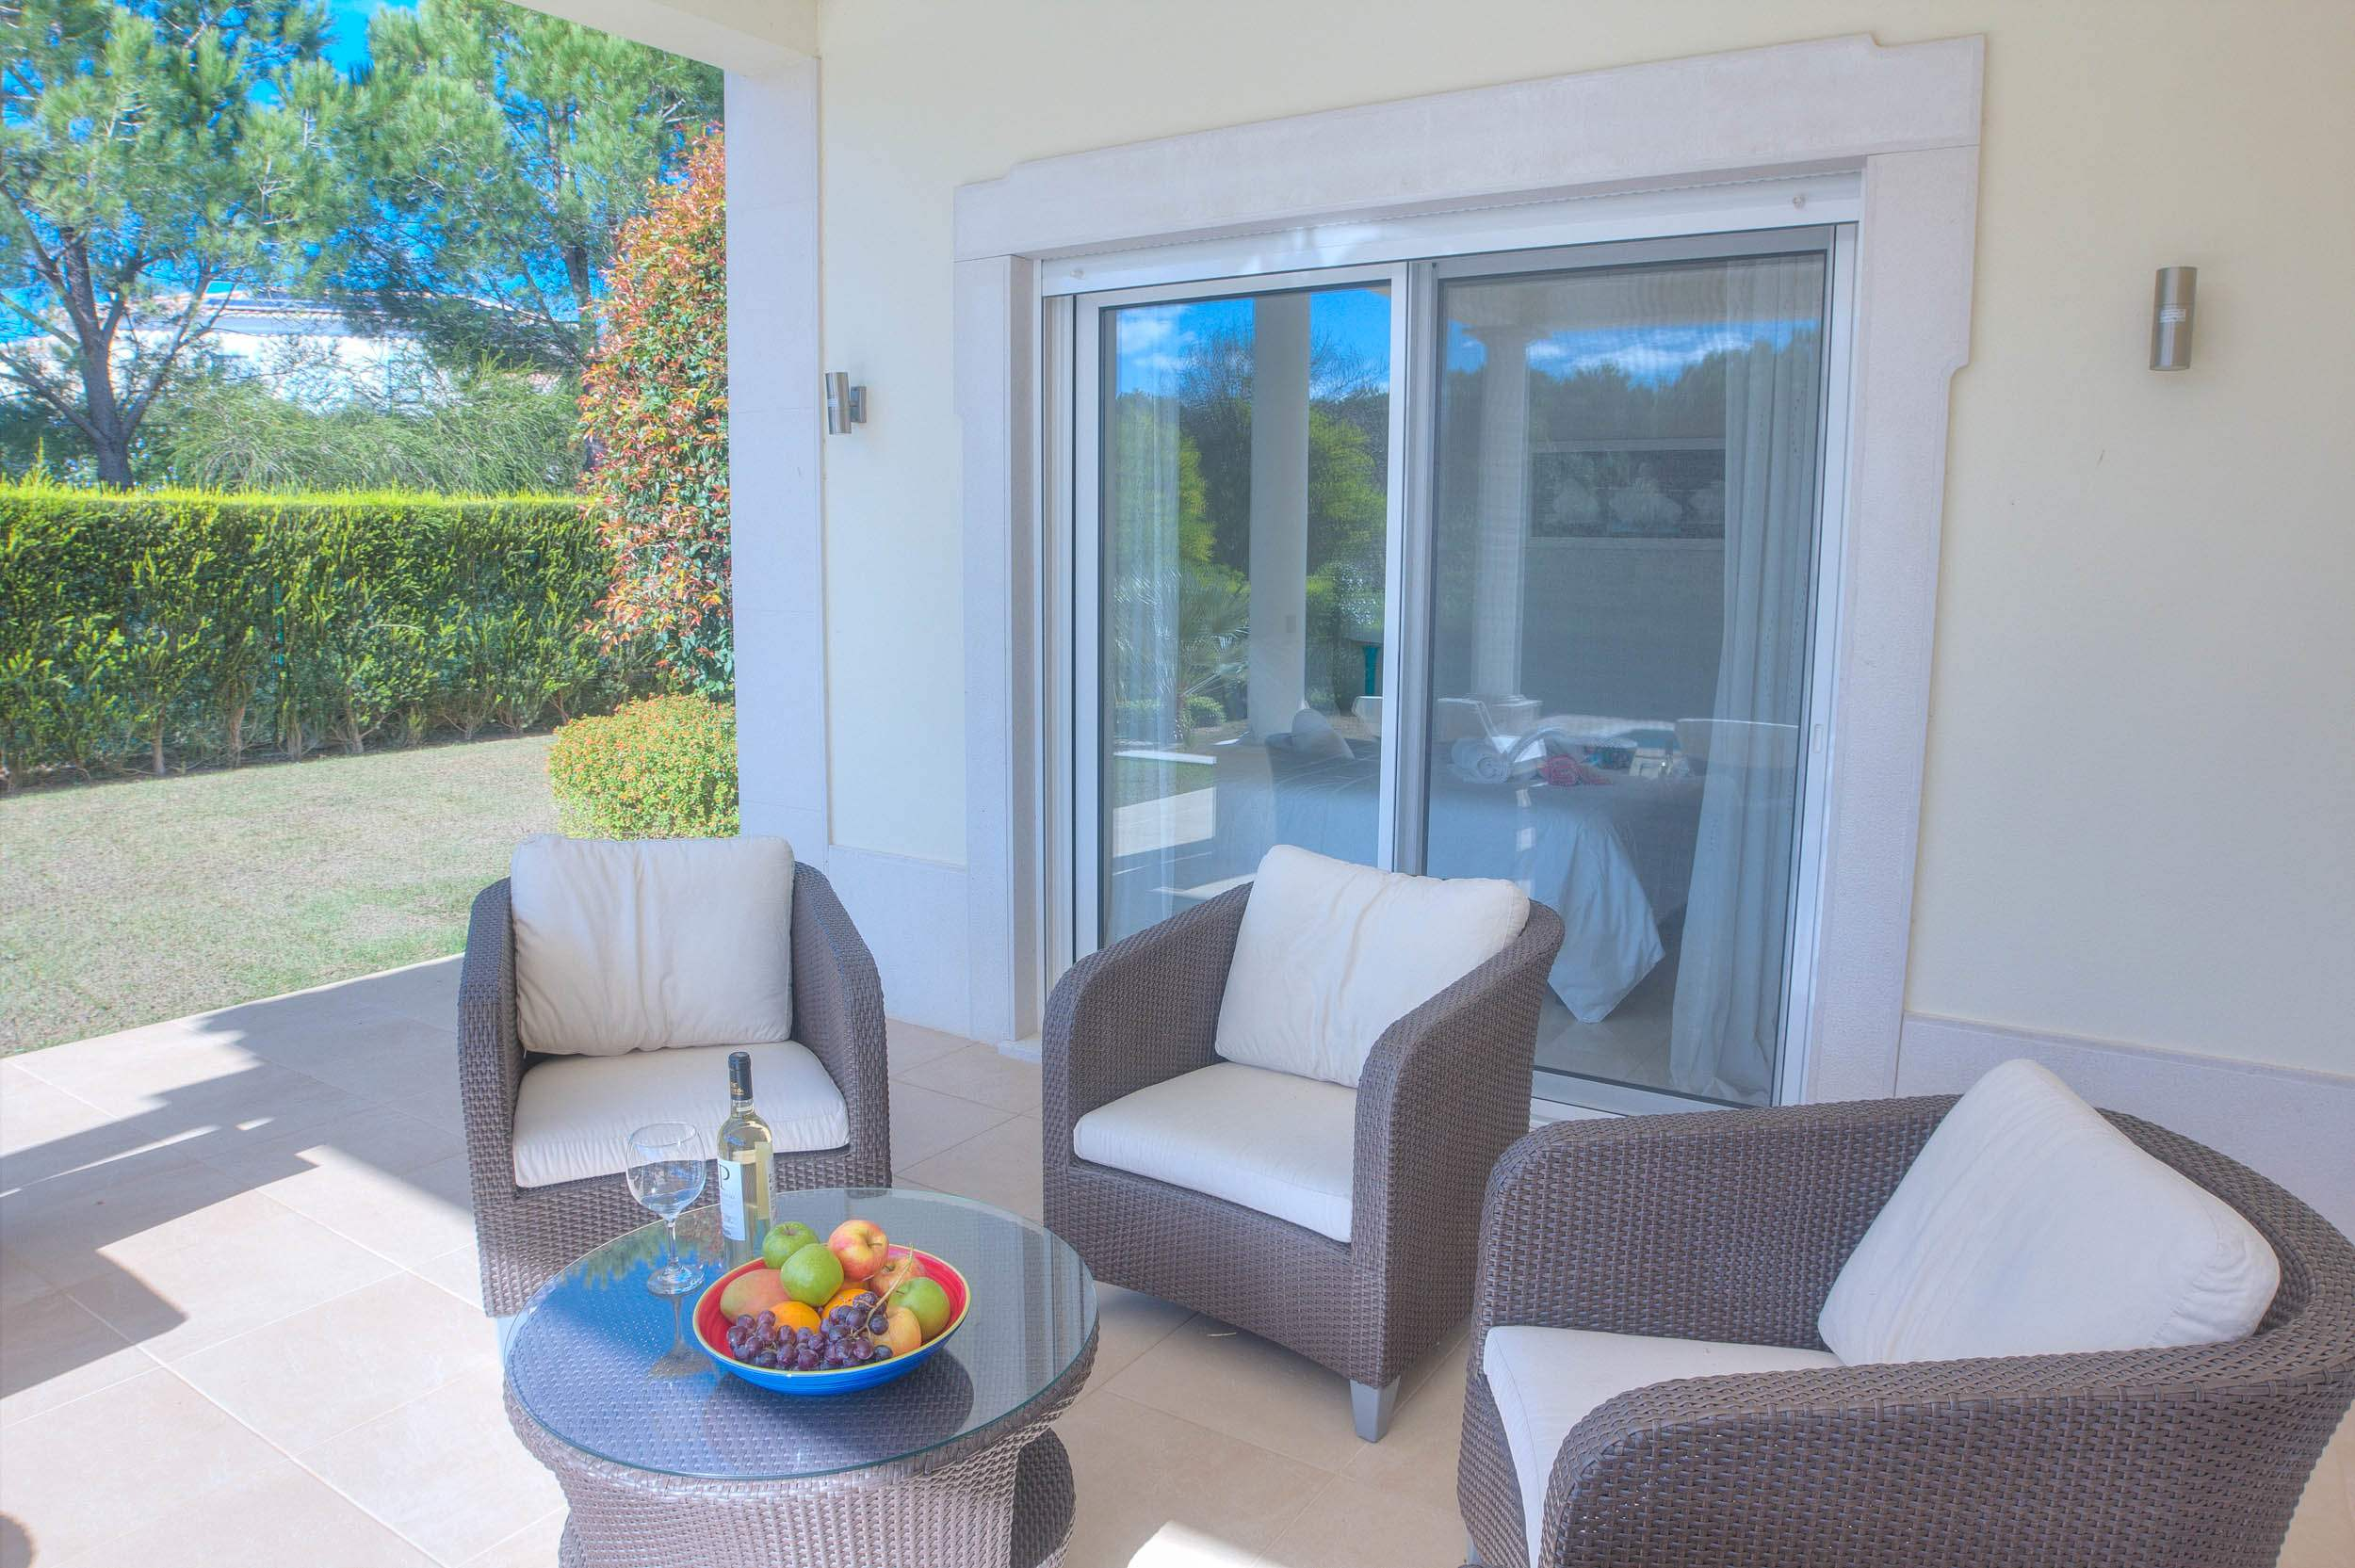 Villa Vida Doce, 6 bedroom villa in Vilamoura Area, Algarve Photo #3